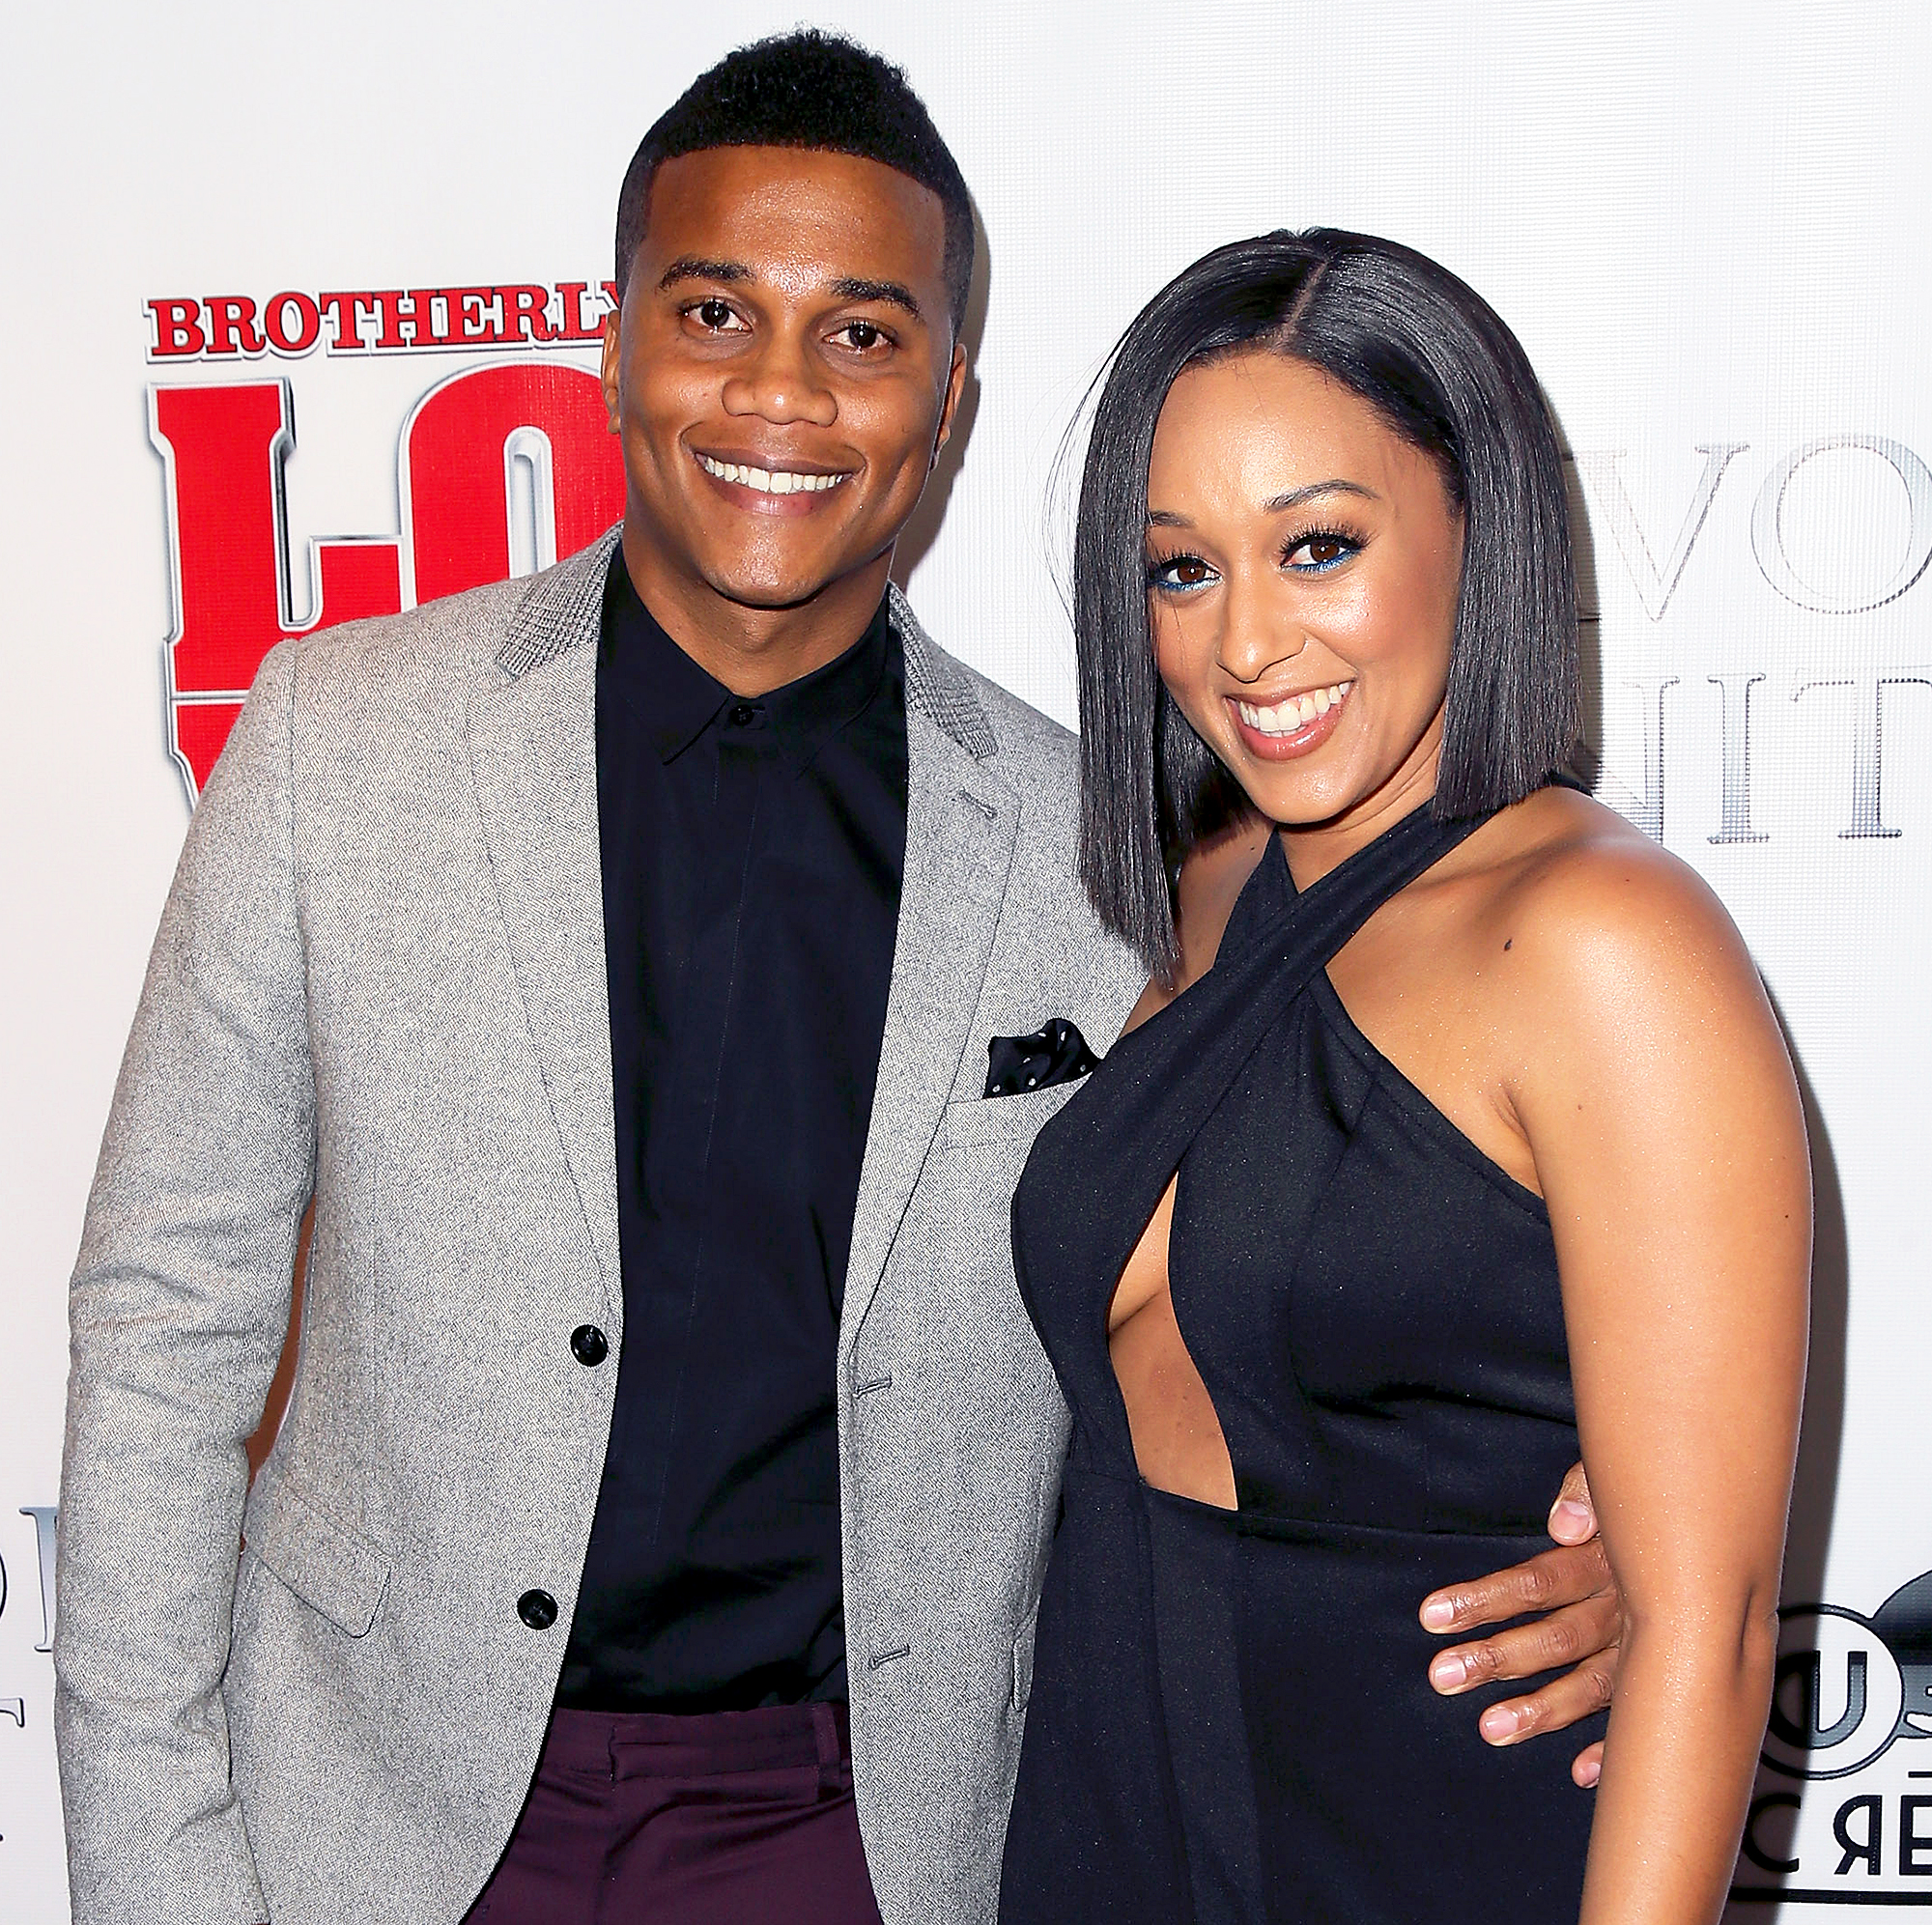 Tia Mowry Pregnant Expecting Second Child With Cory Hardrict